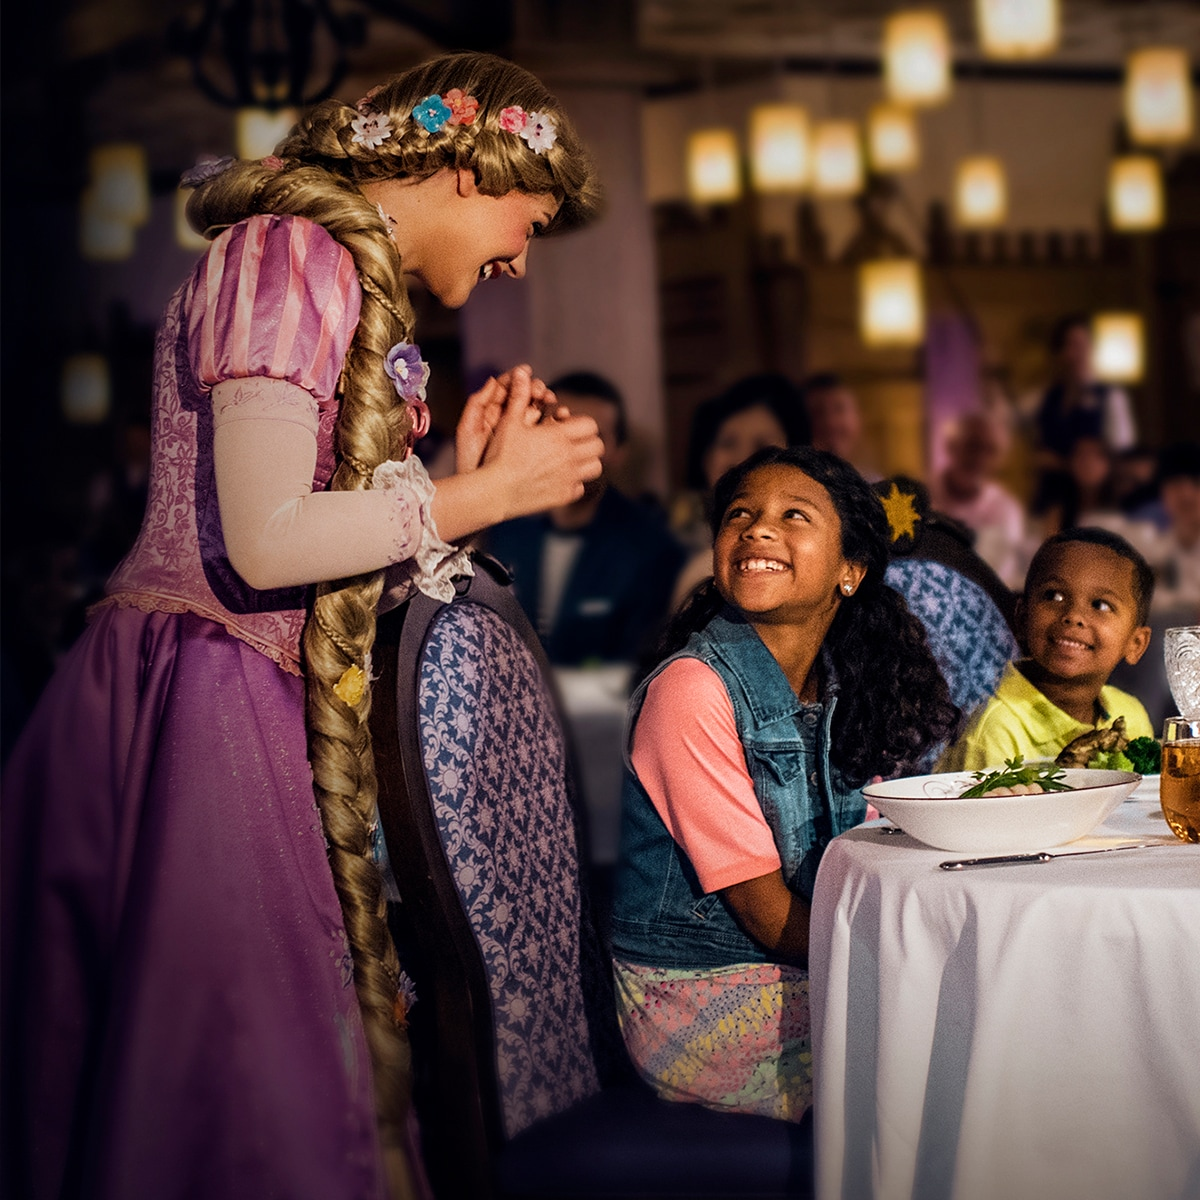 Repunzel greeting a family who are eating dinner